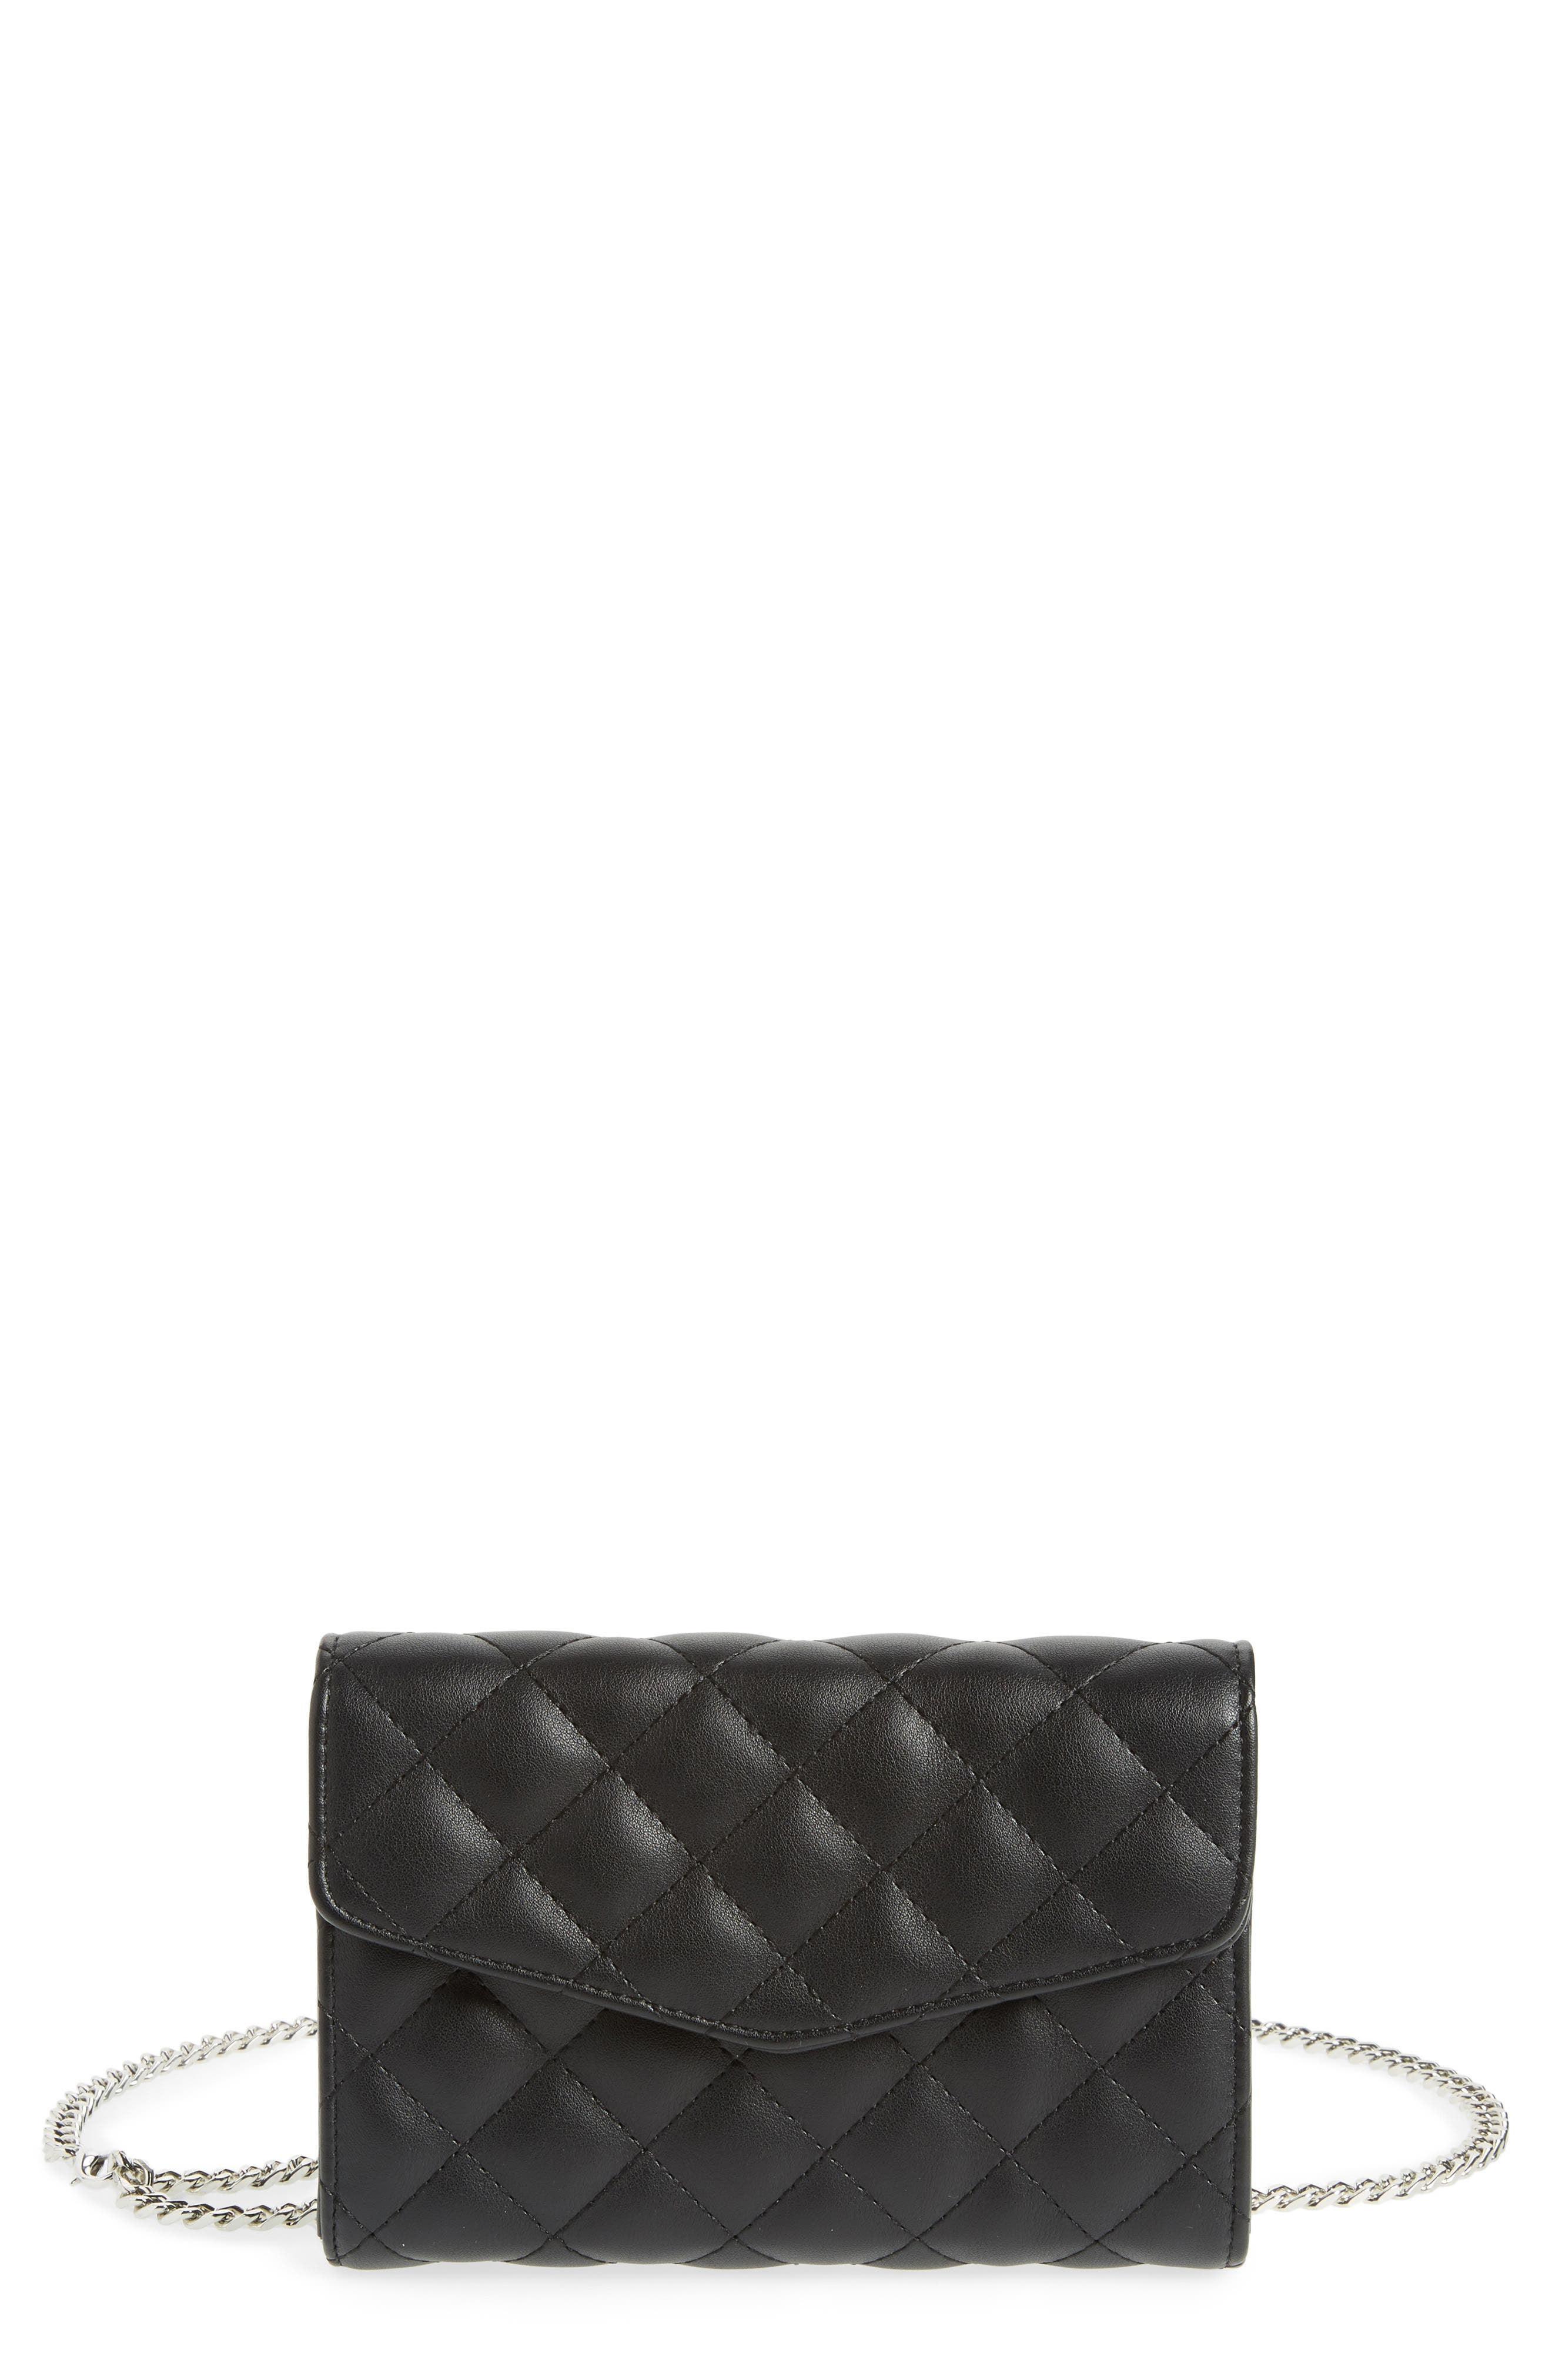 STREET LEVEL QUILTED BAG WITH CROSSBODY STRAP - BLACK